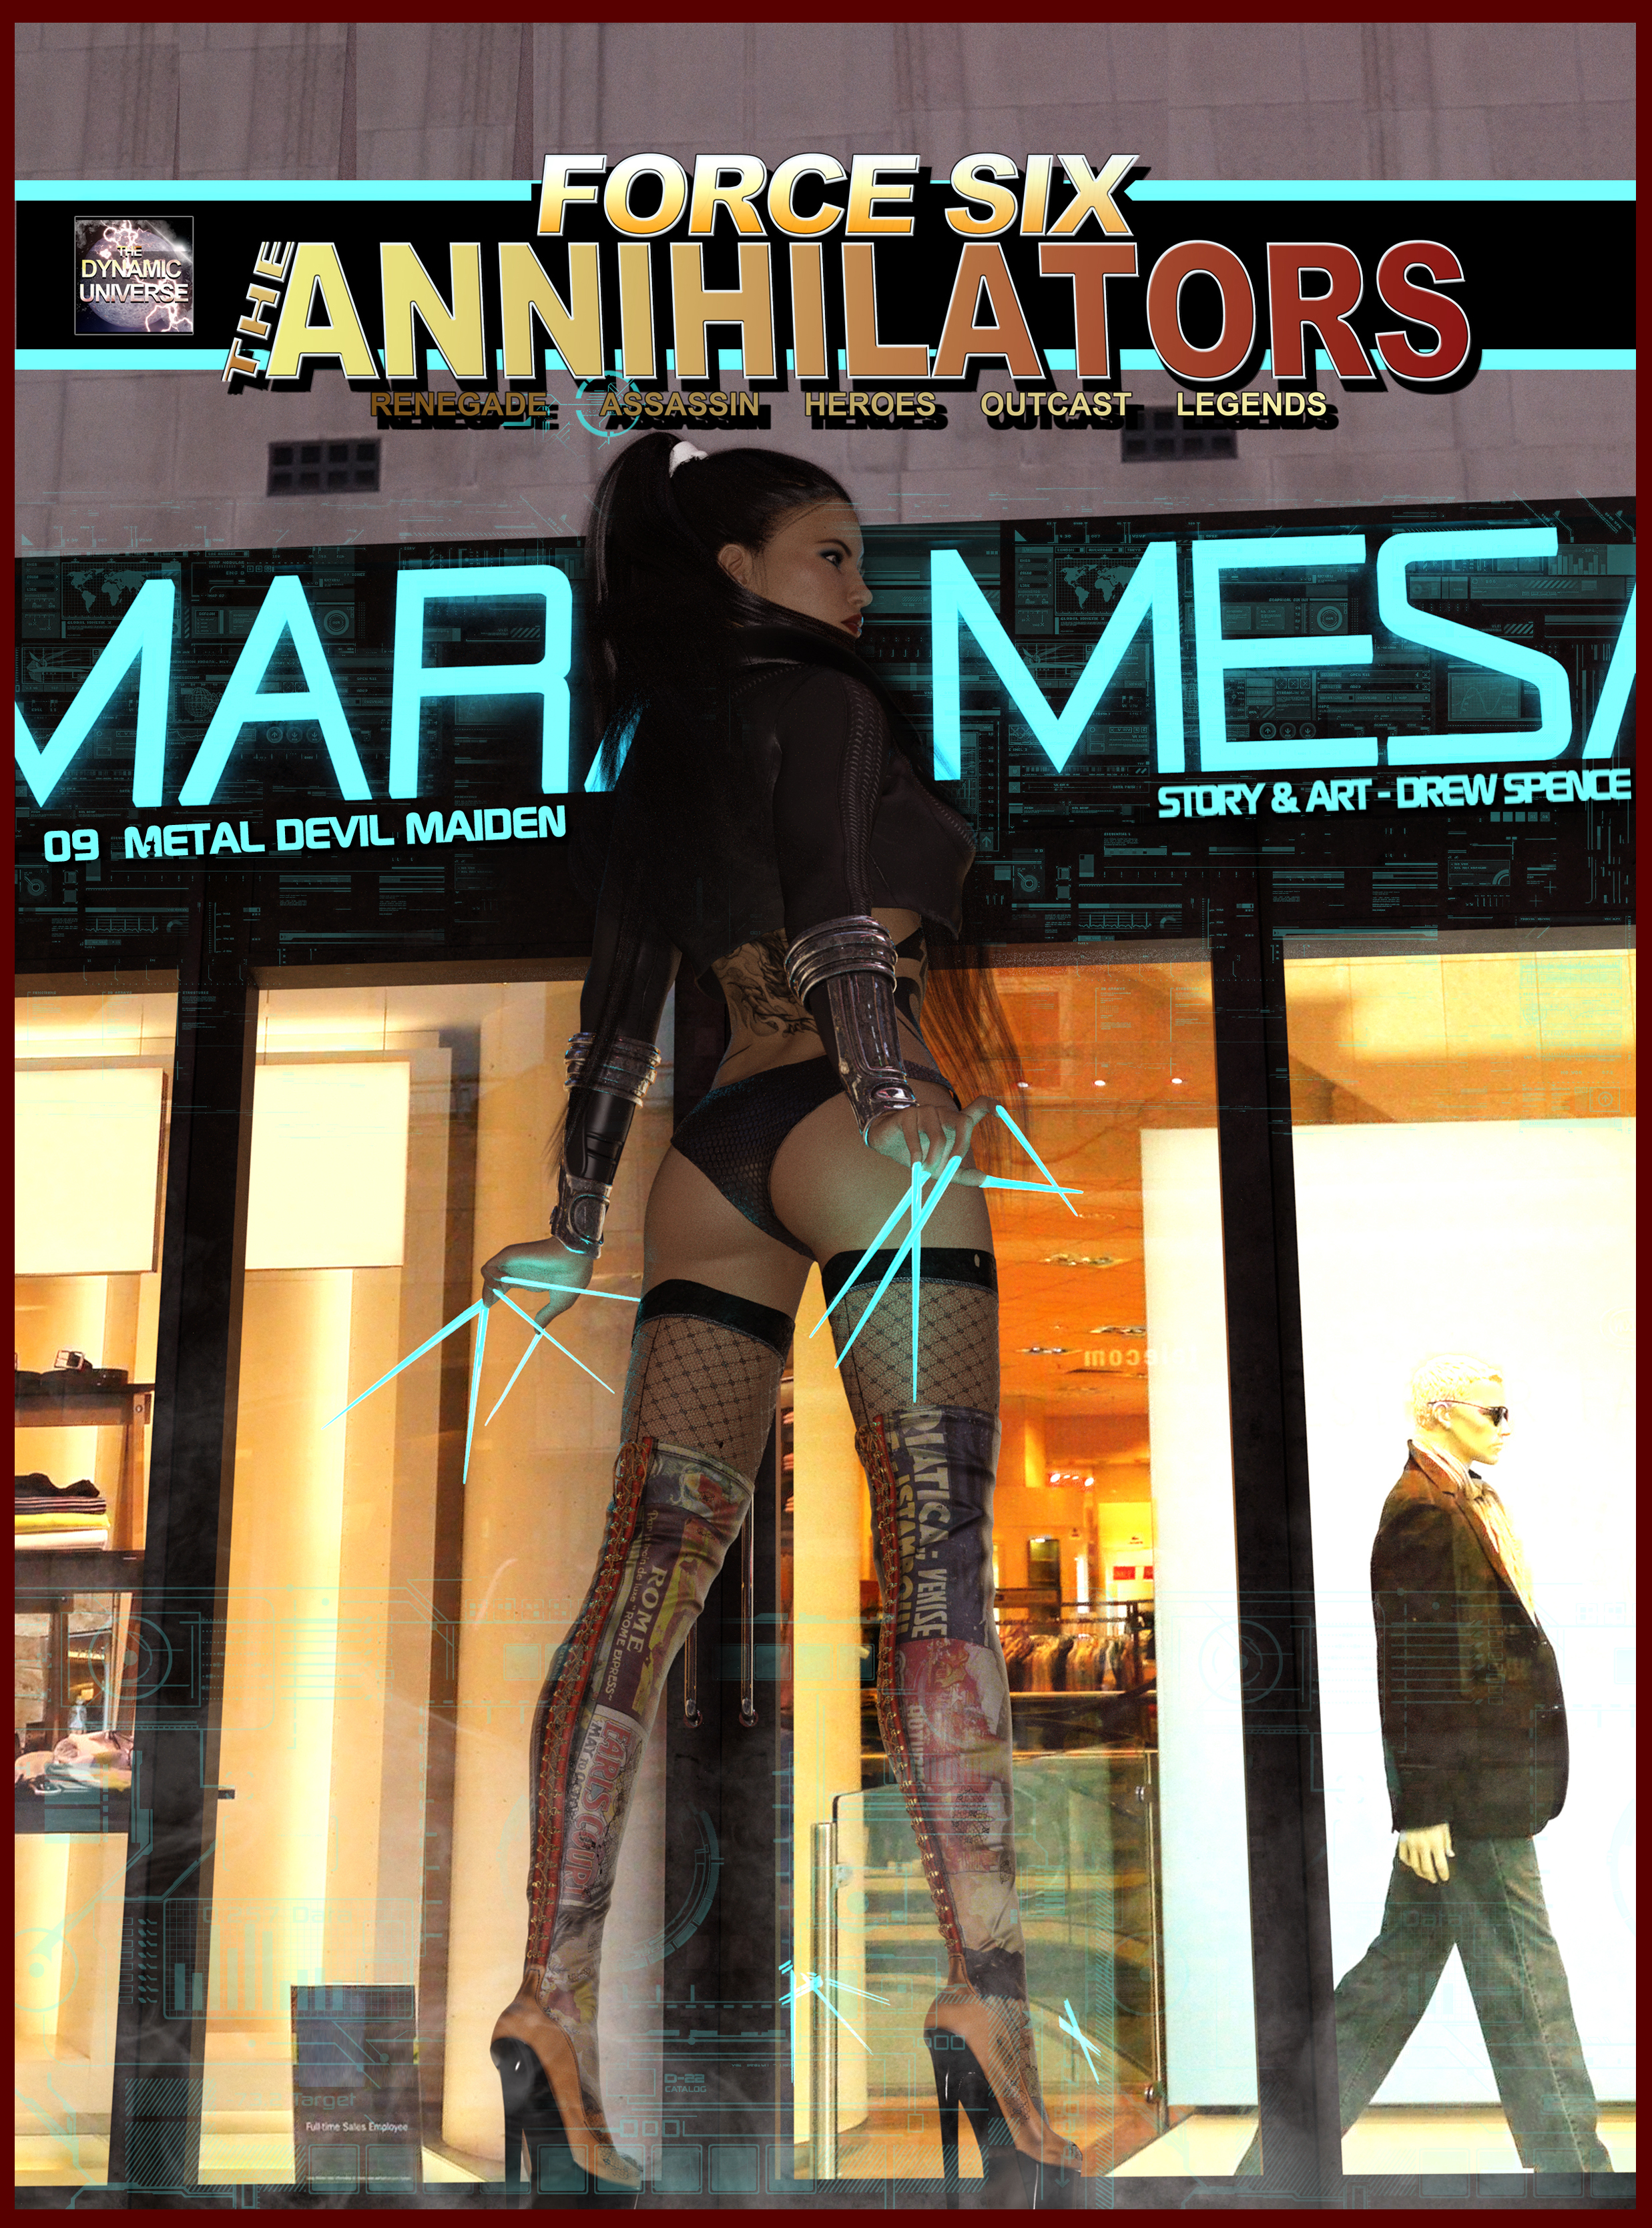 Force Six Annihilators graphic comic book cover